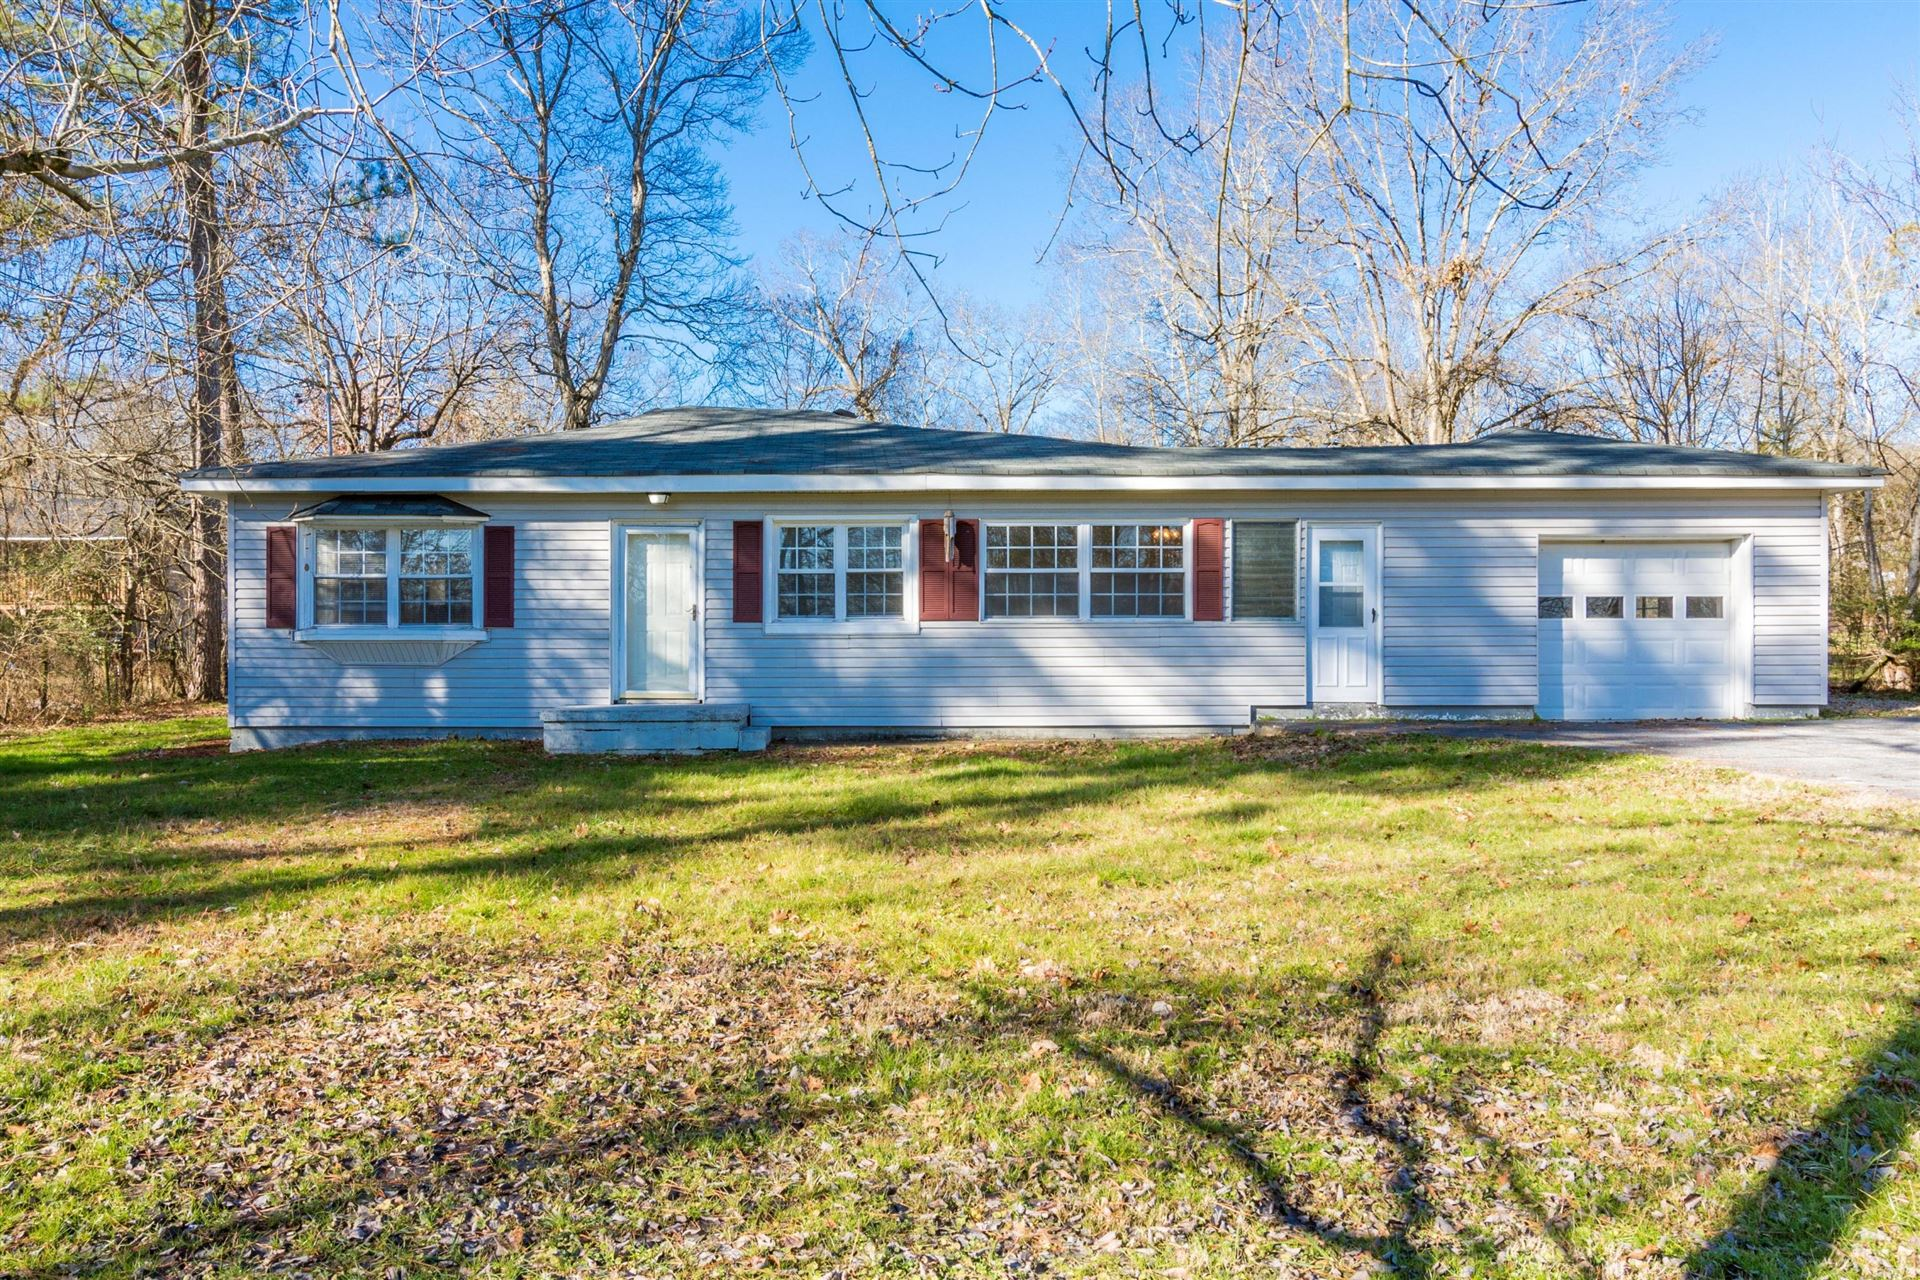 496 Mineral Ave, Rossville, GA 30741 - #: 1311584